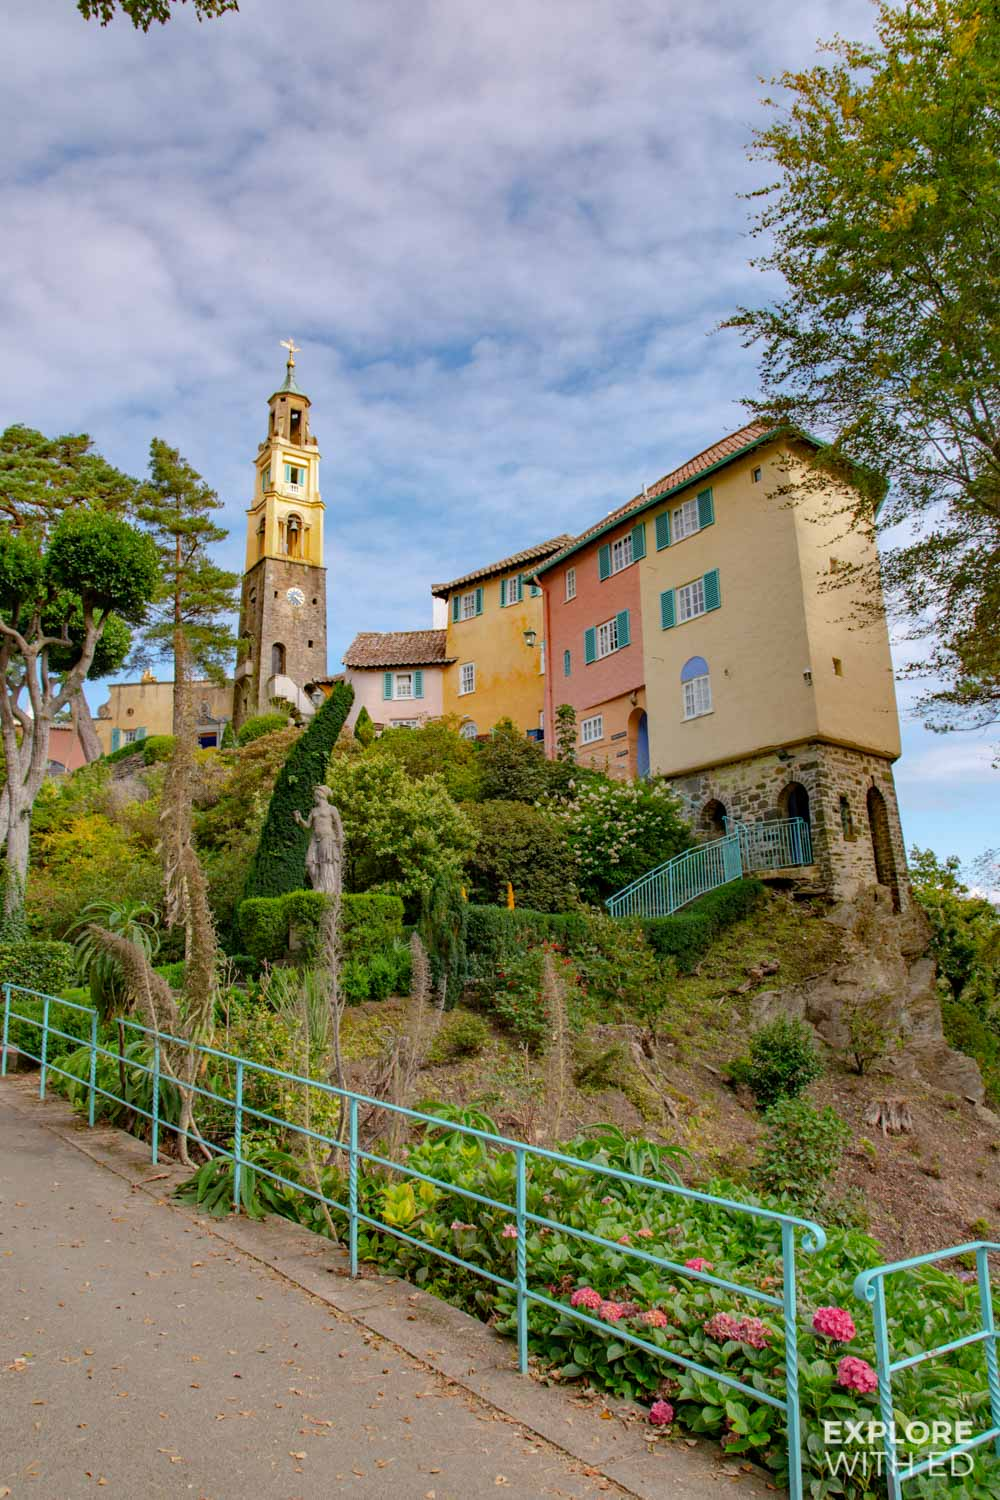 The Italian architecture in Portmeirion Village, Wales